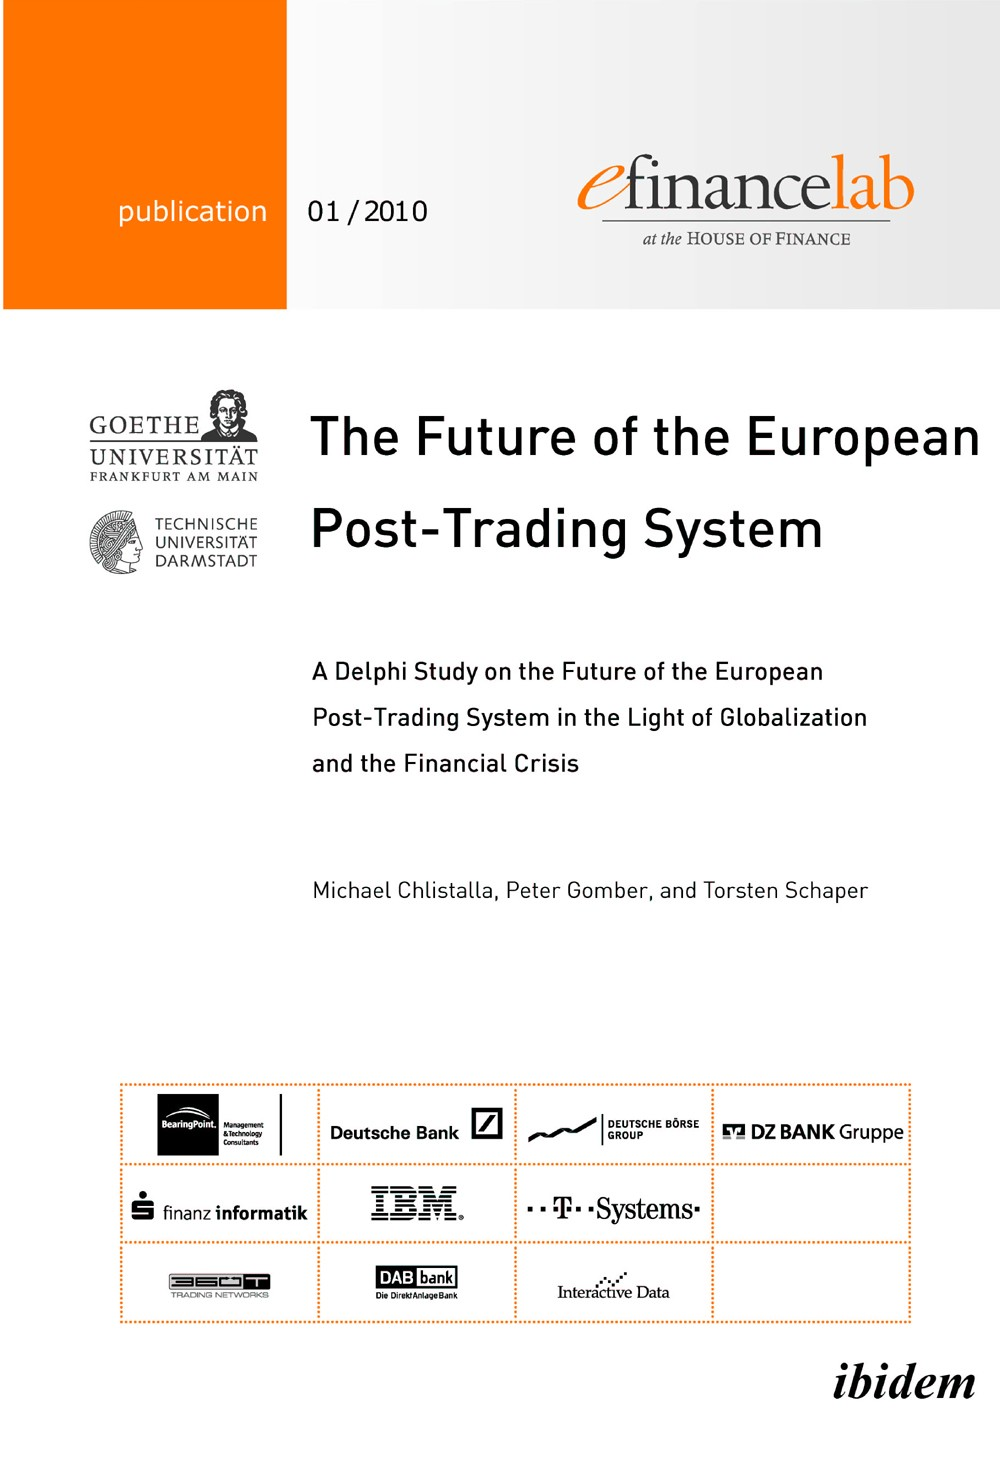 The Future of the European Post-Trading System